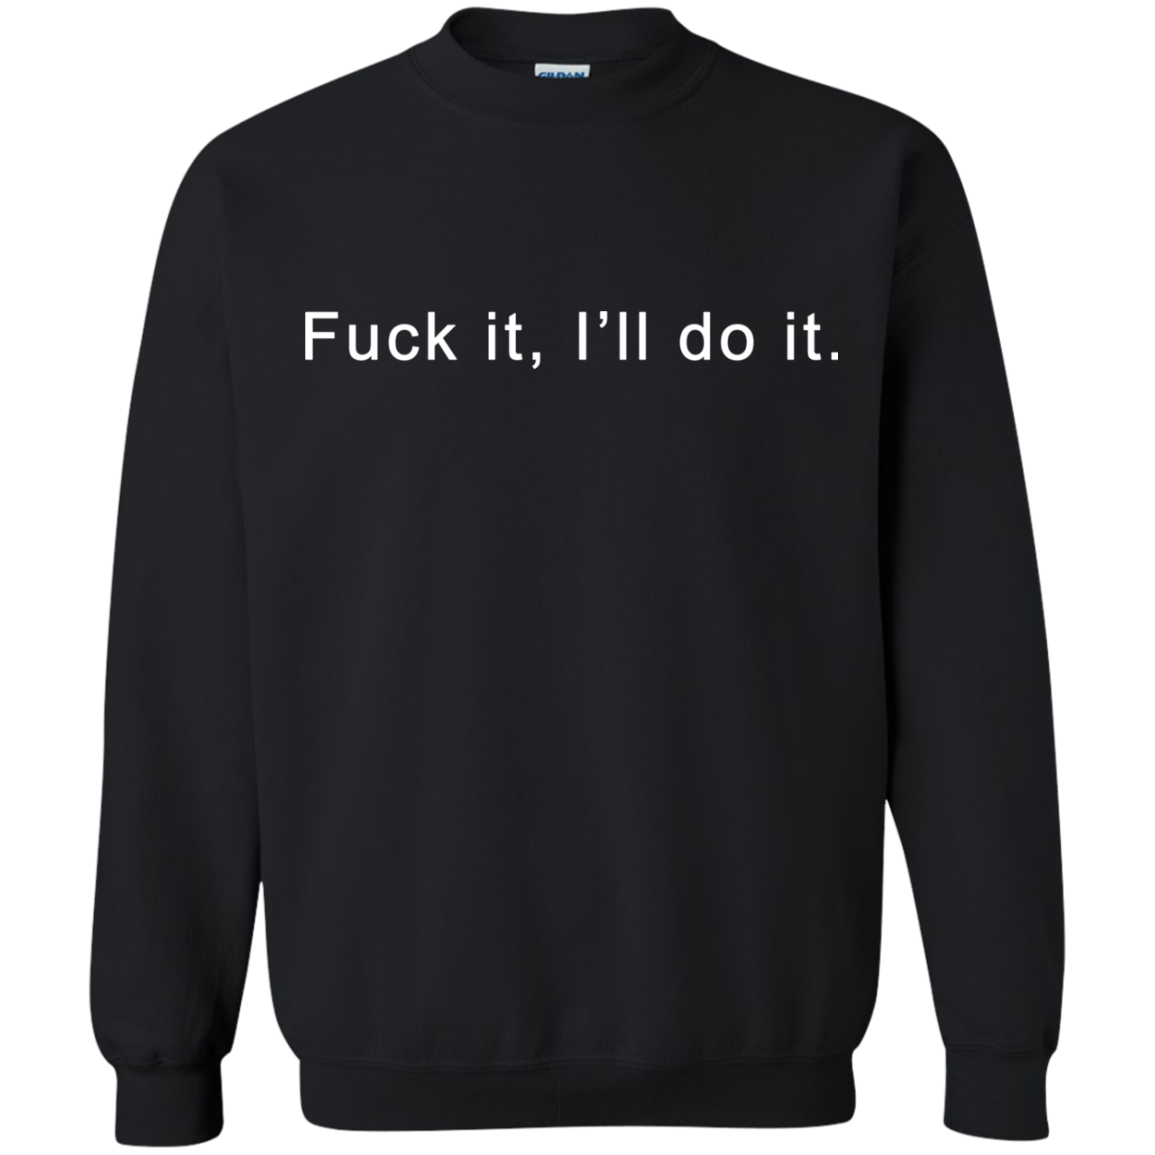 Fuck it I will do it shirt, tank top, hoodie